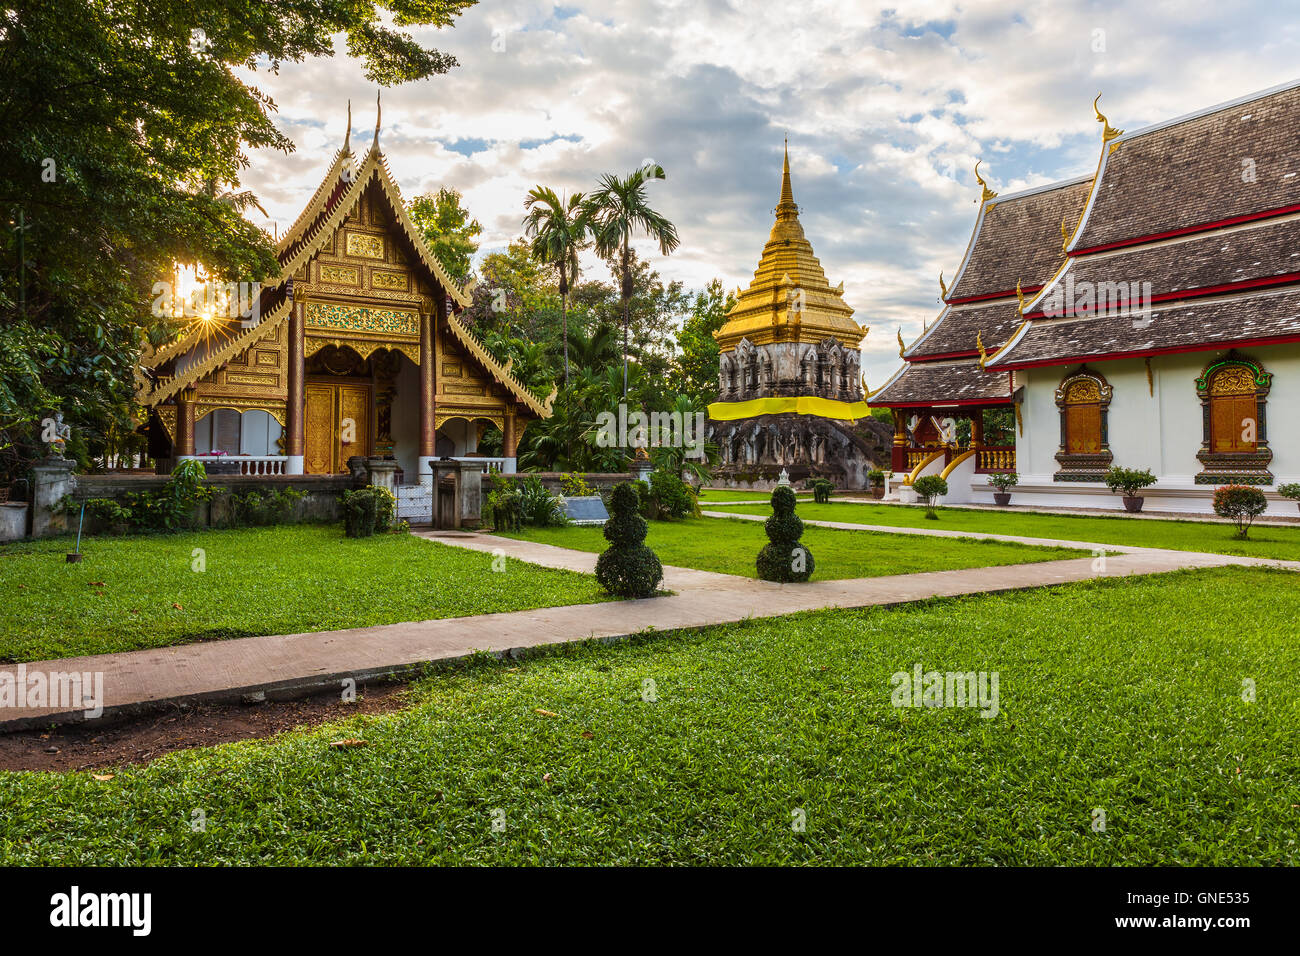 Wat Chiang Man at sunset, the oldest temple in Chiang Mai, Thailand. - Stock Image